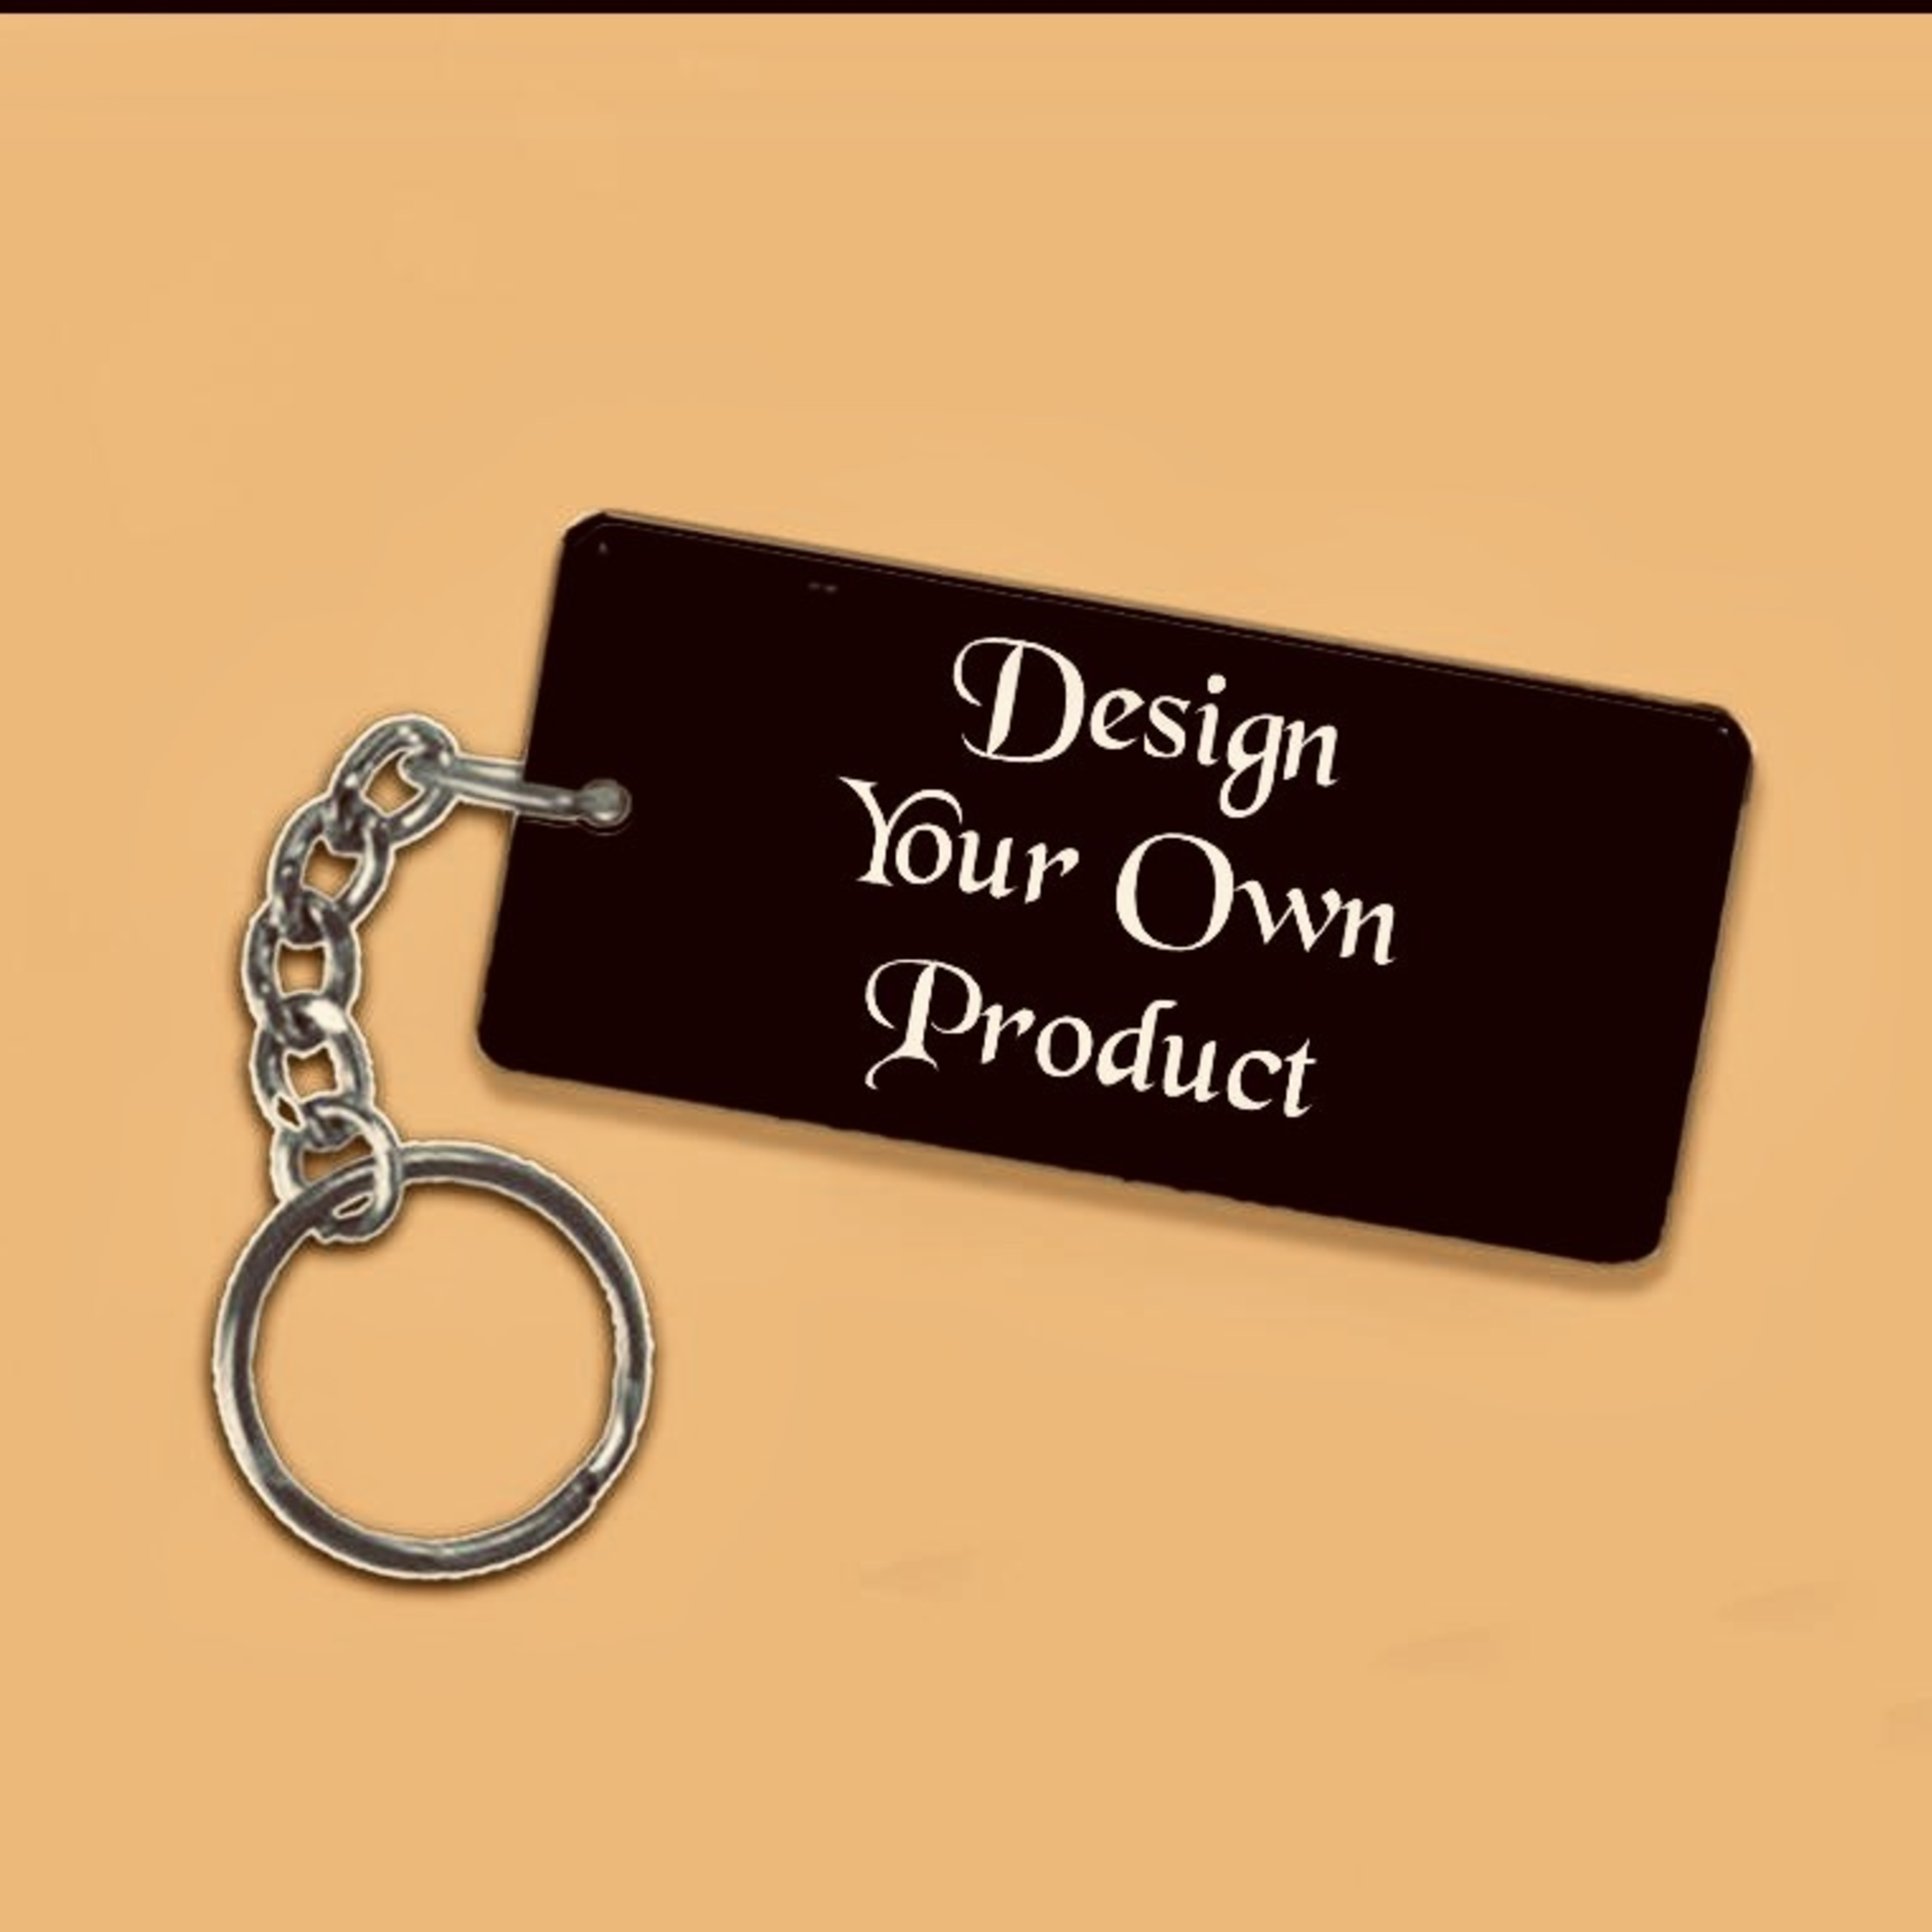 Metal Key-Chains - Customize your own design